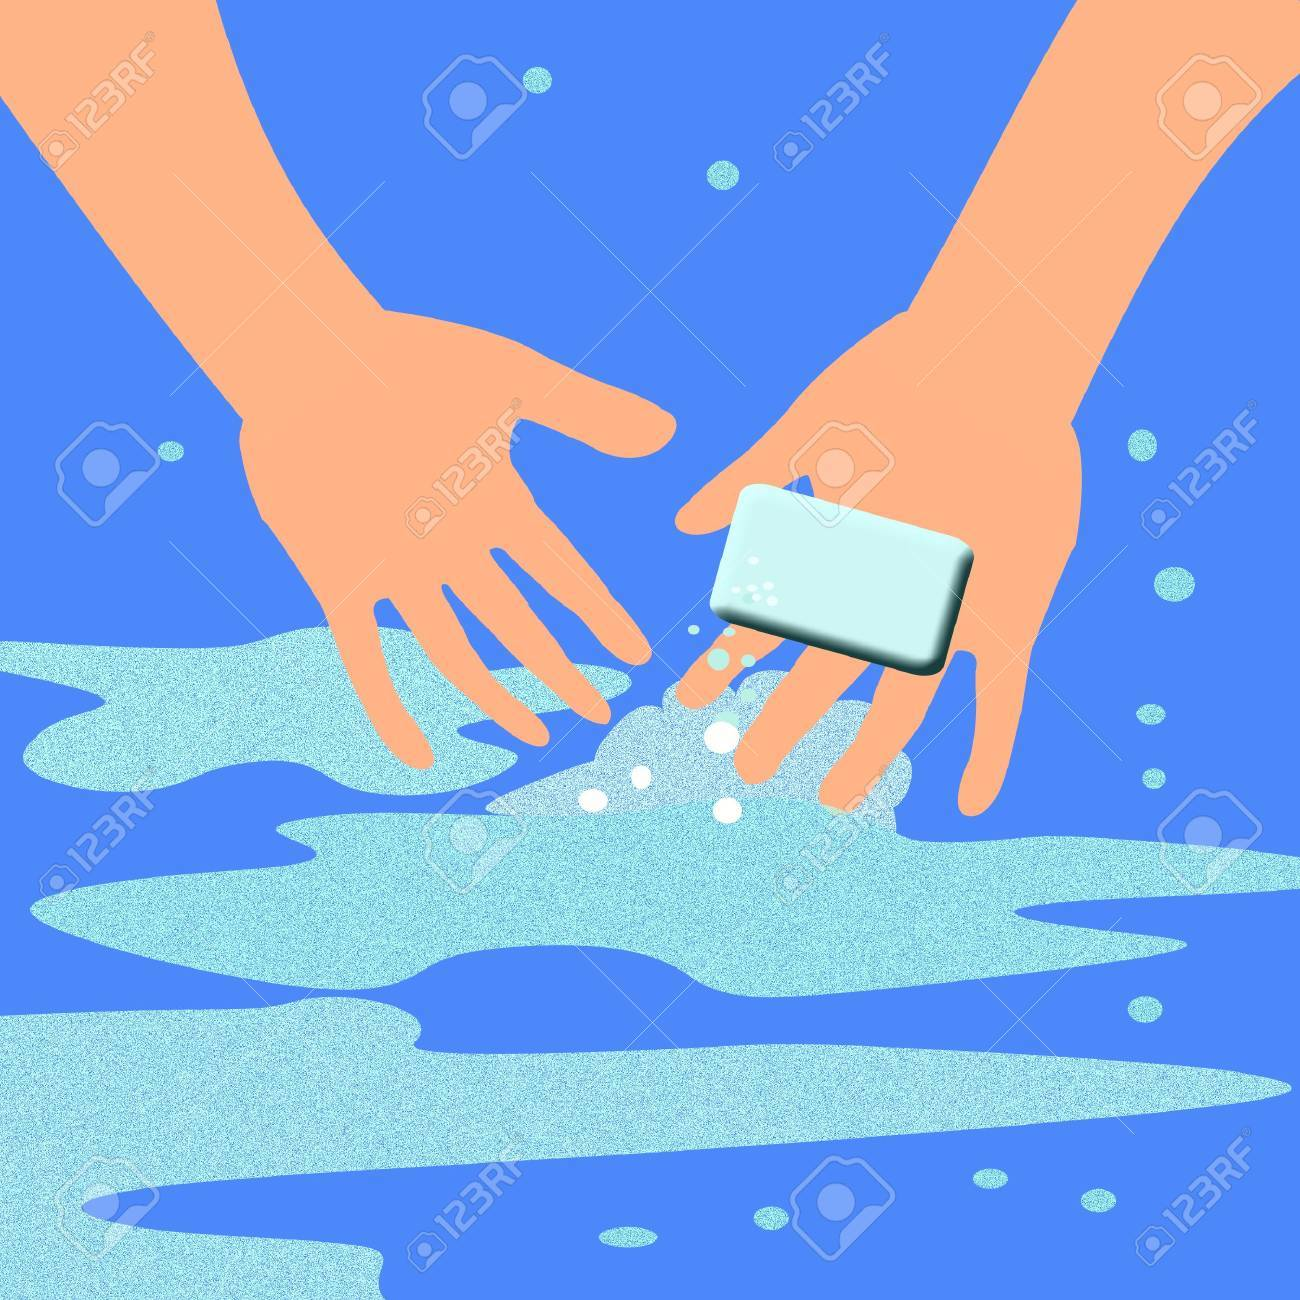 hand at work washing up with a bar of soap Stock Photo - 2166547